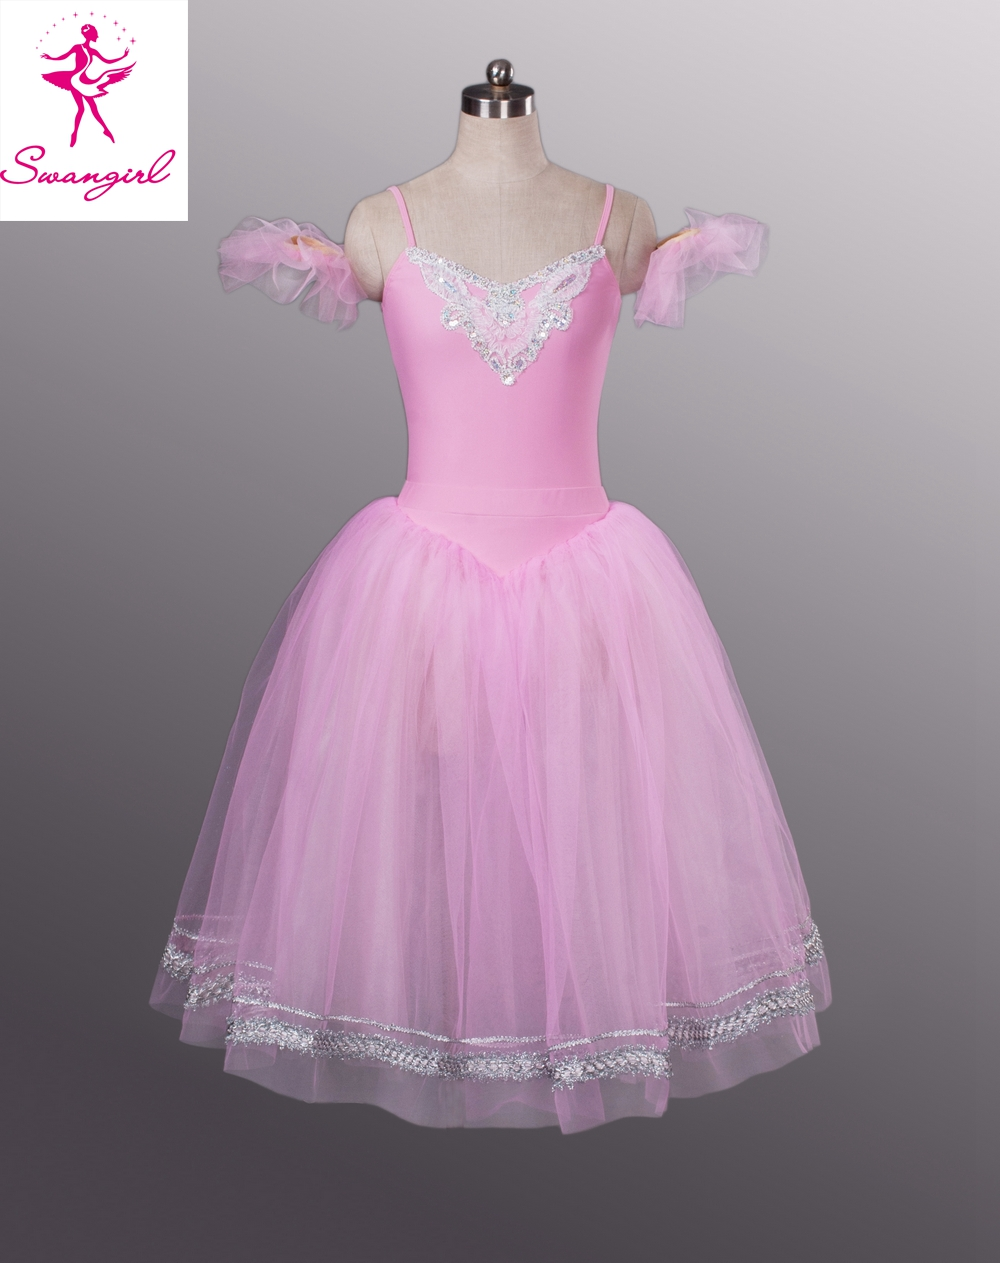 Green Giselle Ballet Dress Professional Costumes For Girls In Pinkwhiteblue BT8954 From Novelty Special Use On